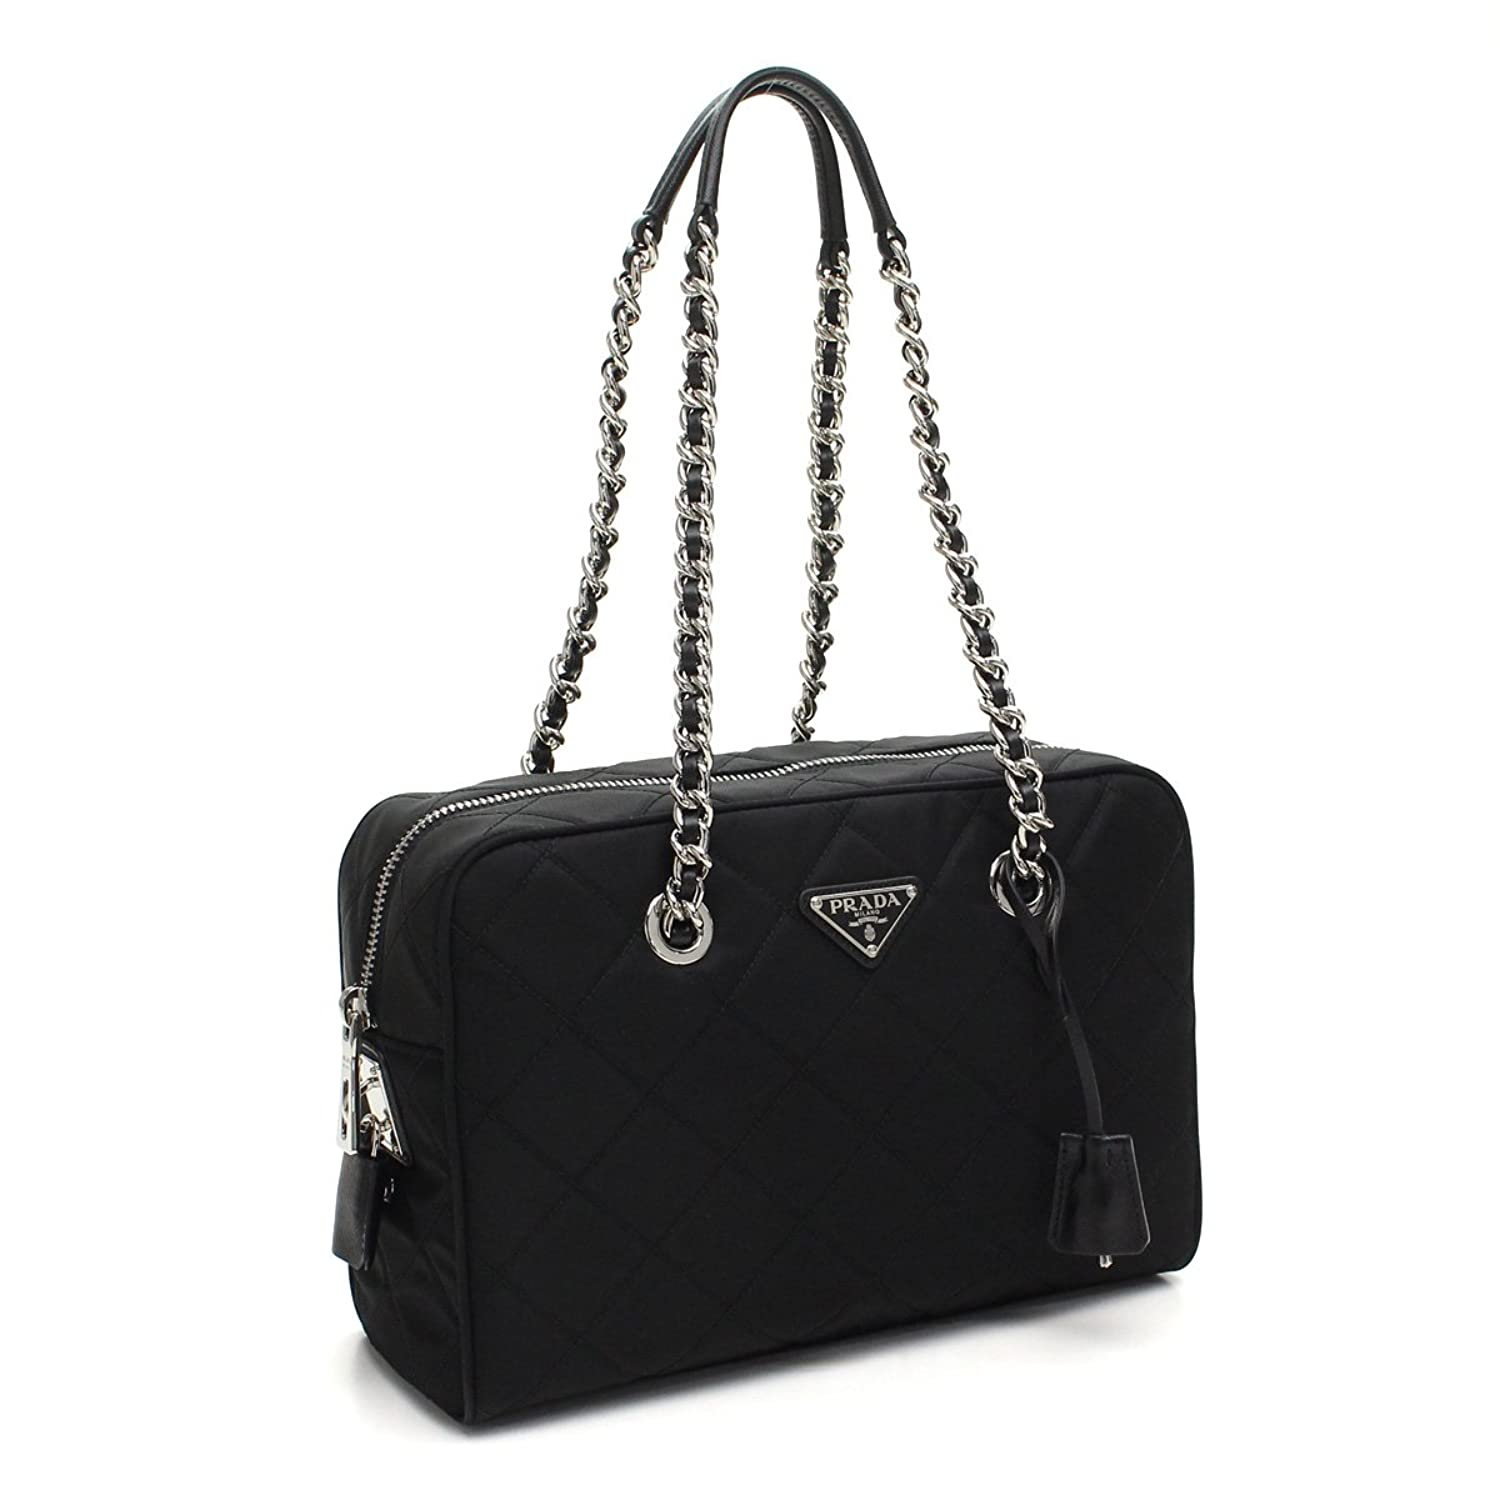 a2b8c3a525fd ... discount code for prada womens black tessuto nylon handbag 1bb903  handbags amazon 98c19 063b2